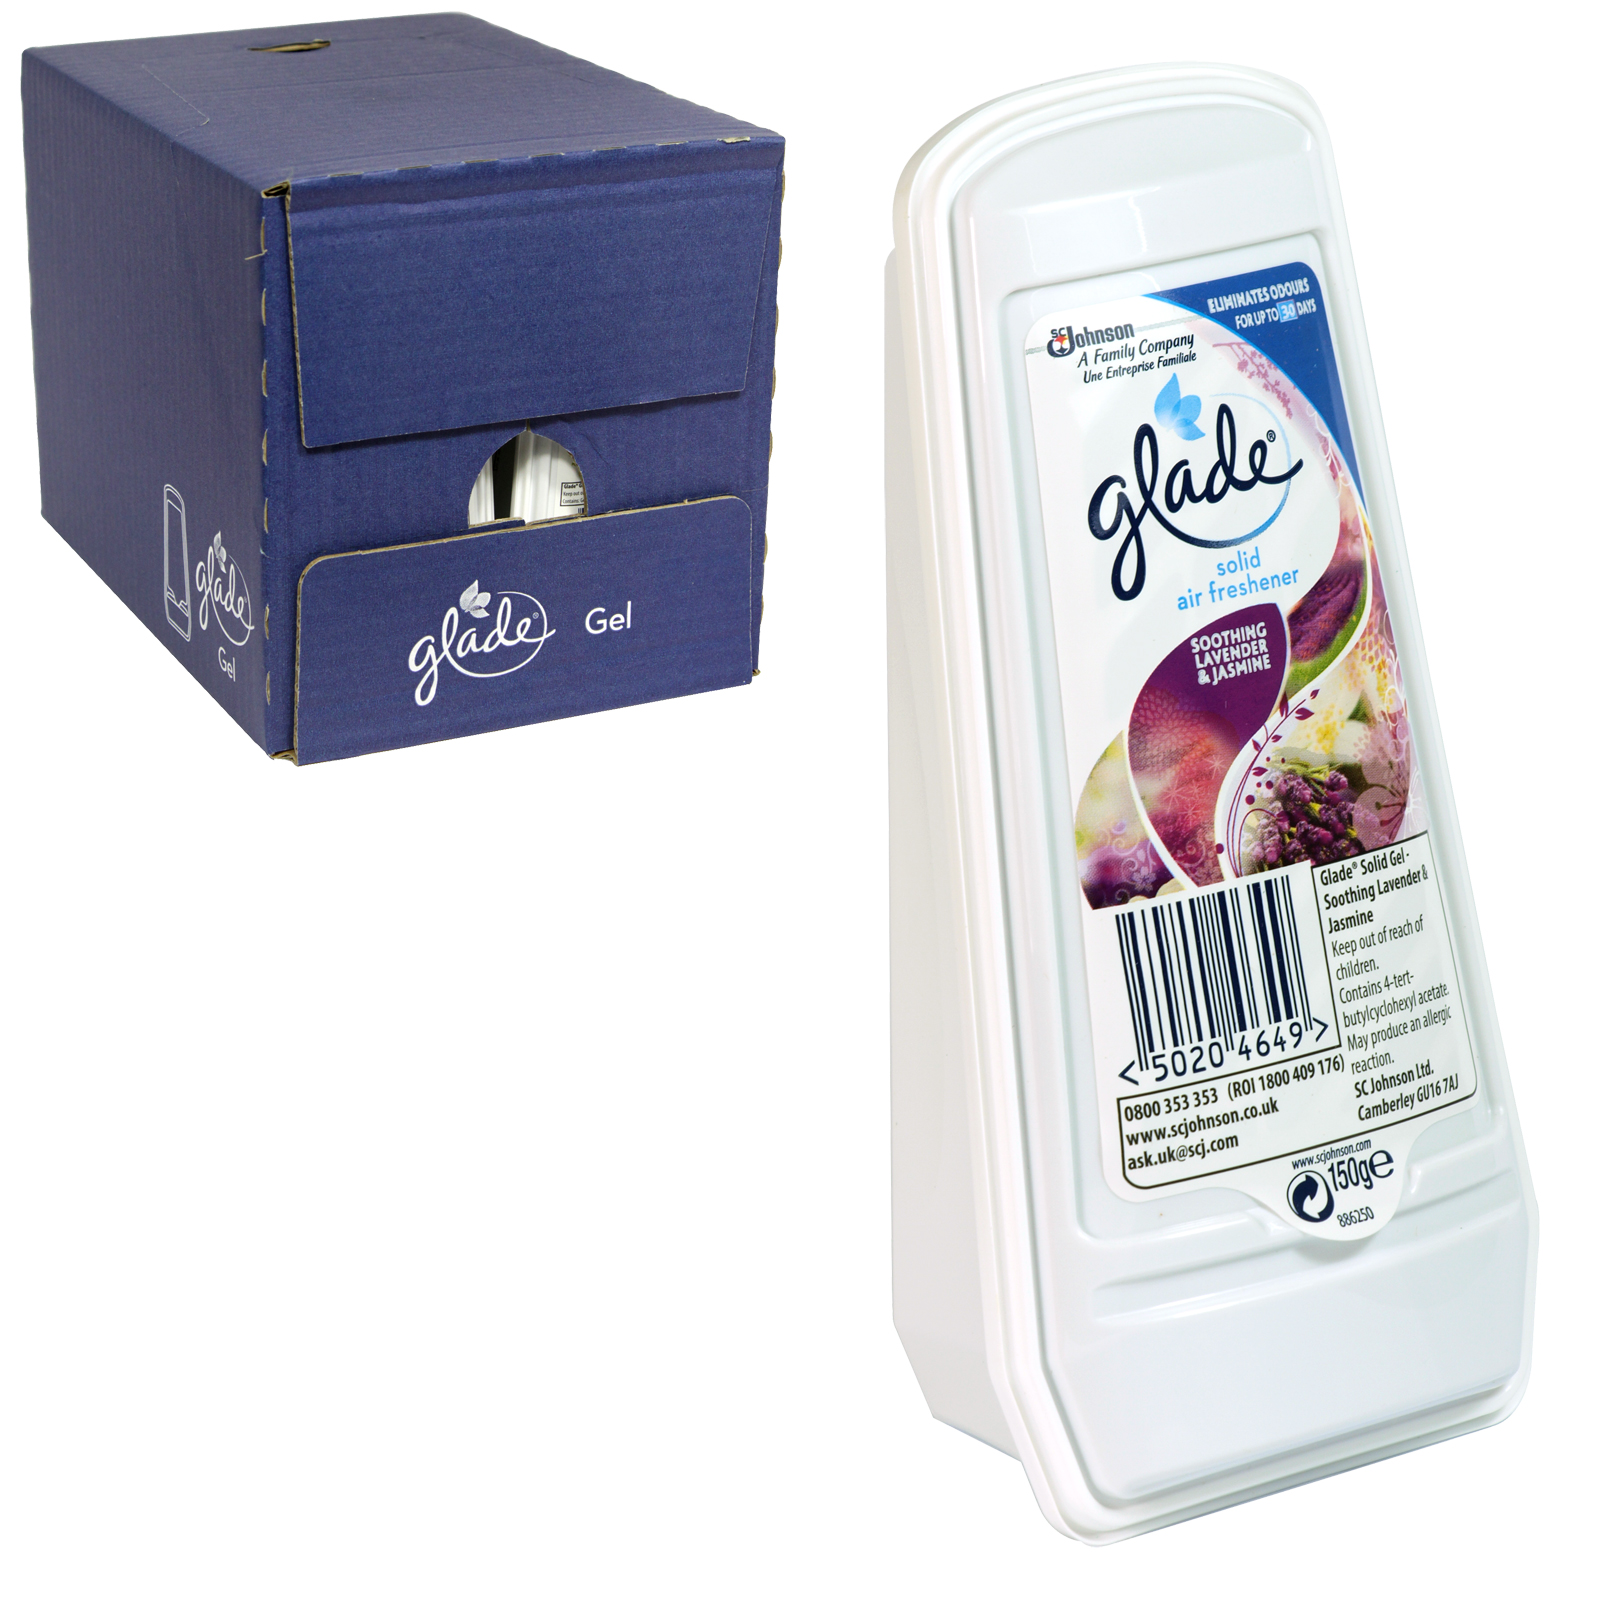 GLADE ESSENCE SOLID GEL 150GM LAVENDER+JASMINE X8